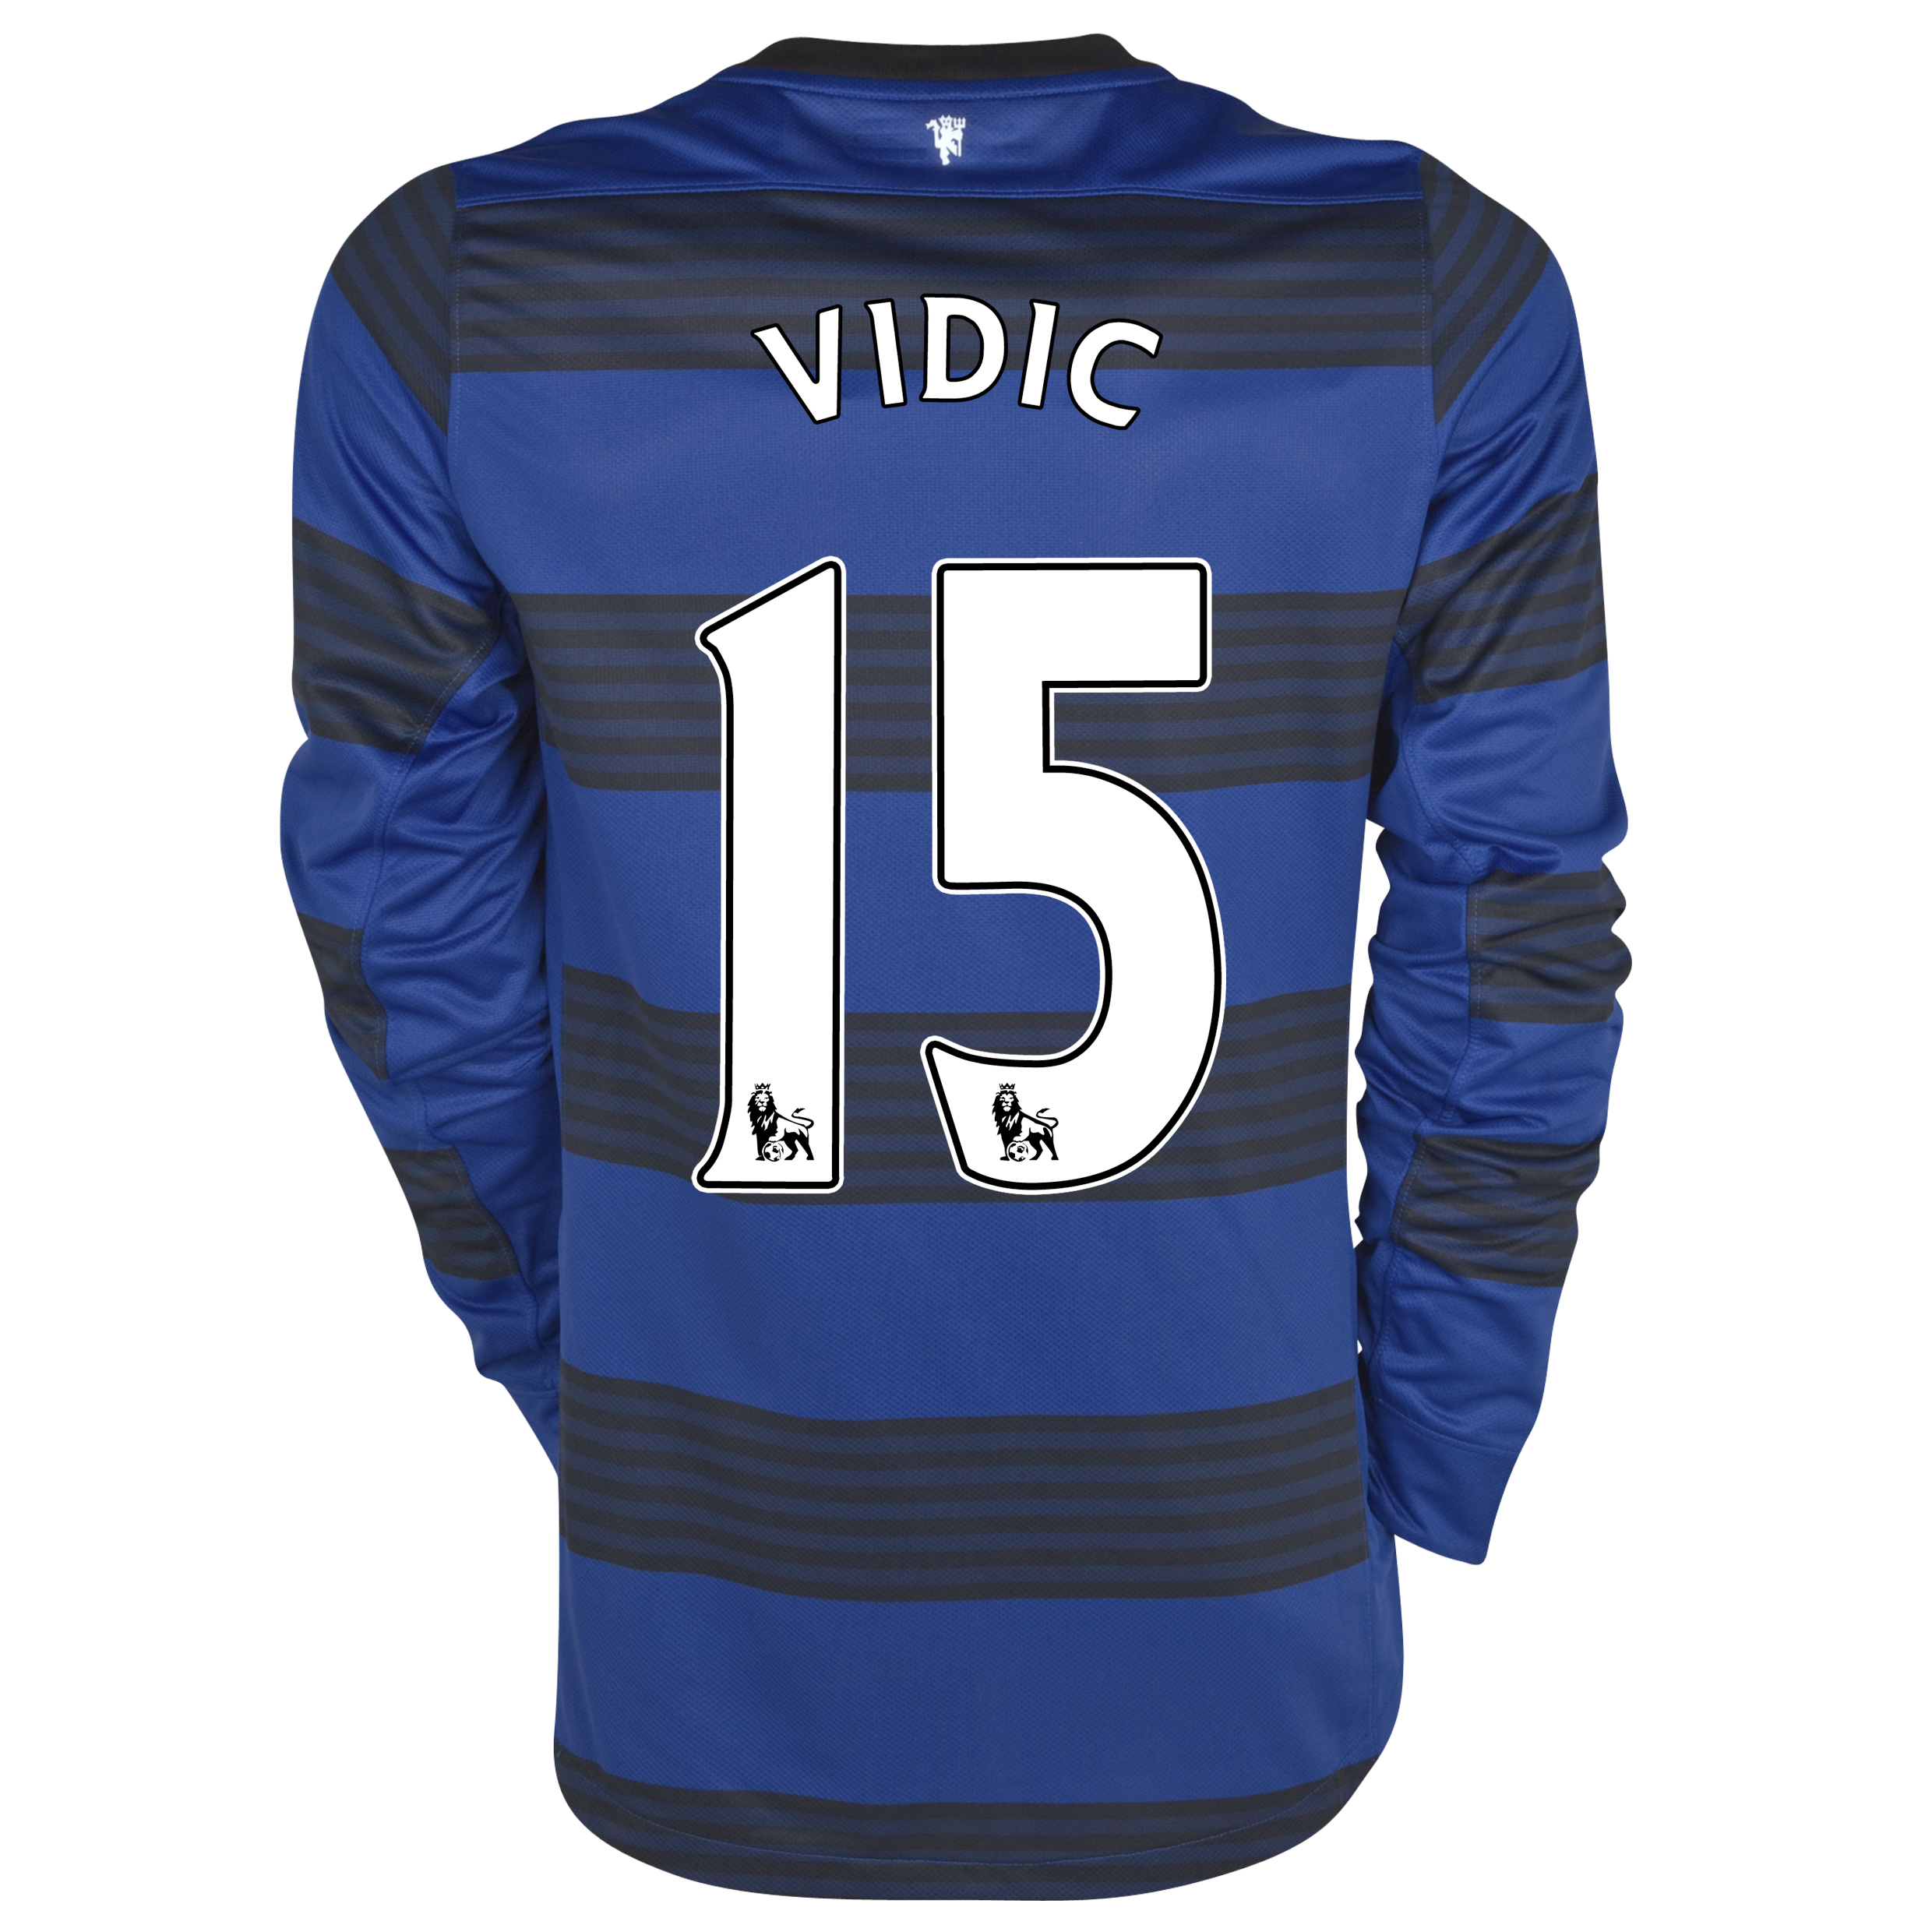 Manchester United Away Shirt 2011/12 - Long Sleeved - Kids with Vidic 15 printing